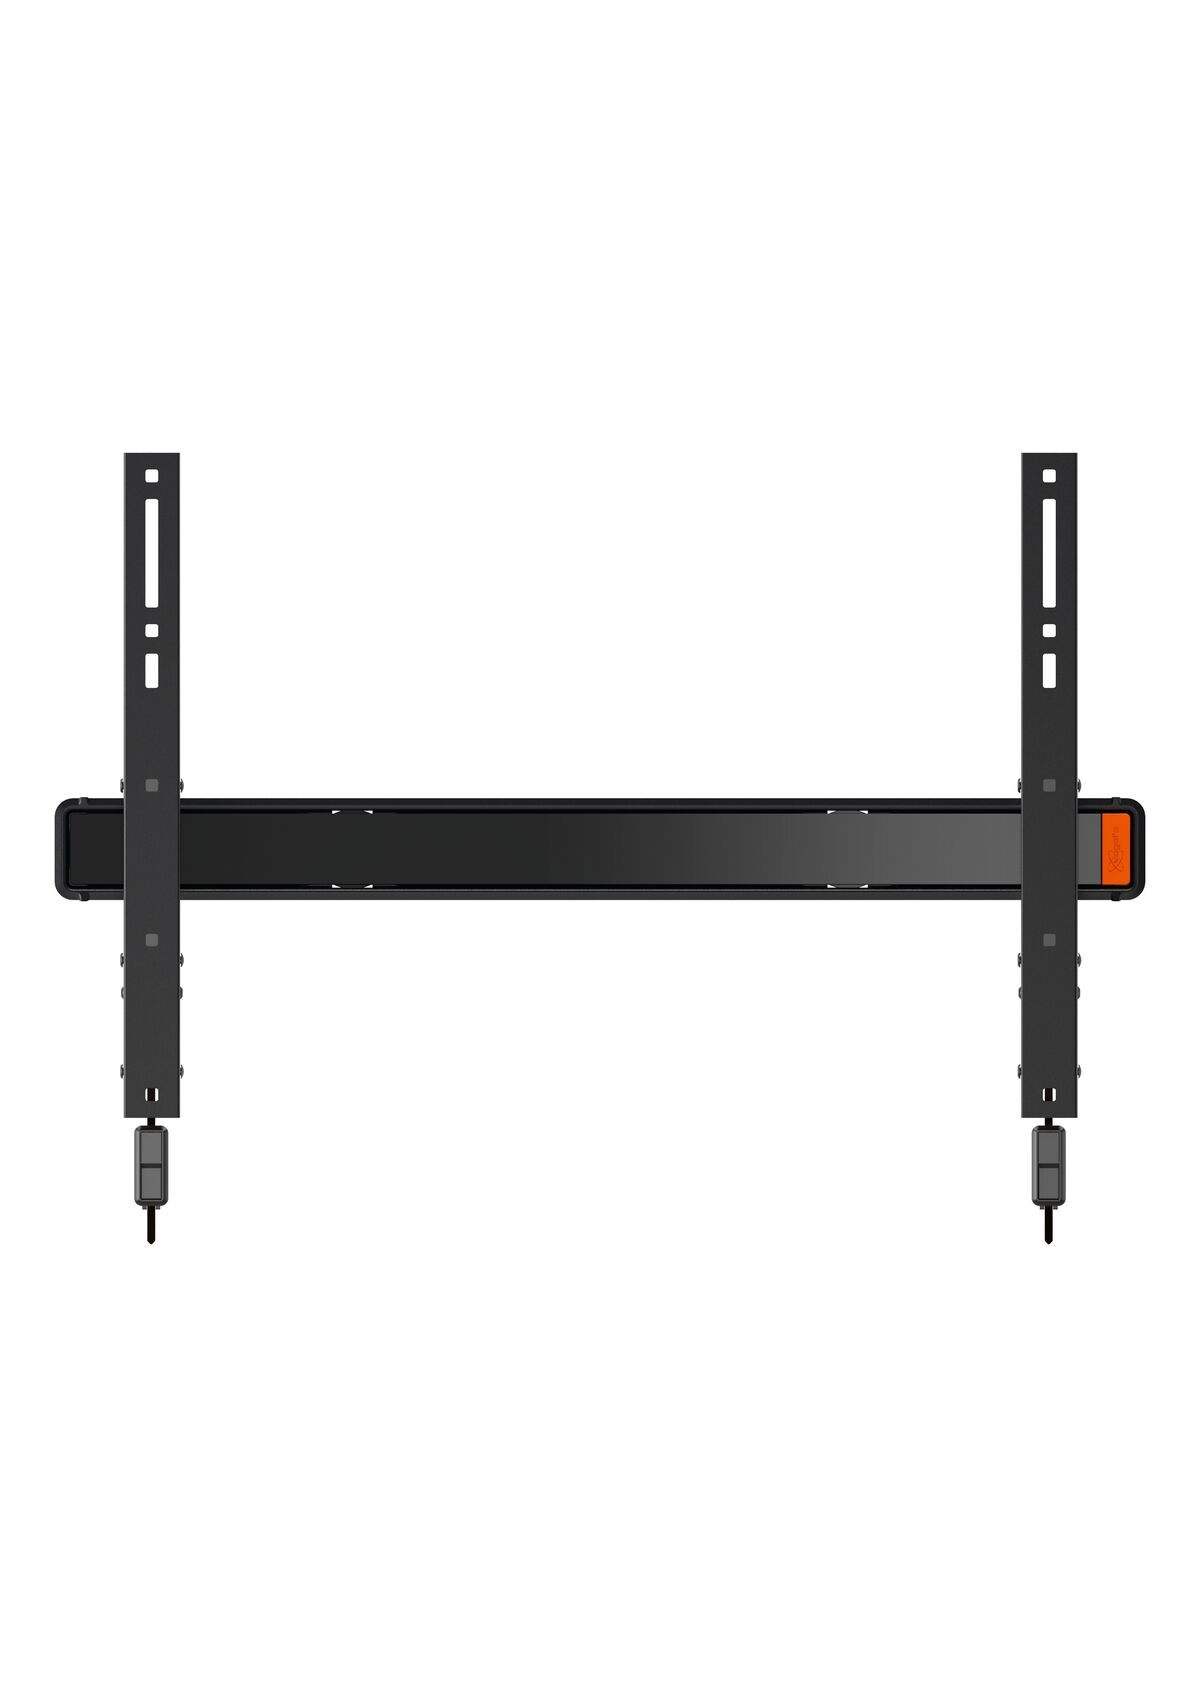 Vogel's WALL 2315 Tilting TV Wall Mount - Suitable for 40 up to 65 inch TVs up to kg - Tilt up to 15° - Front view